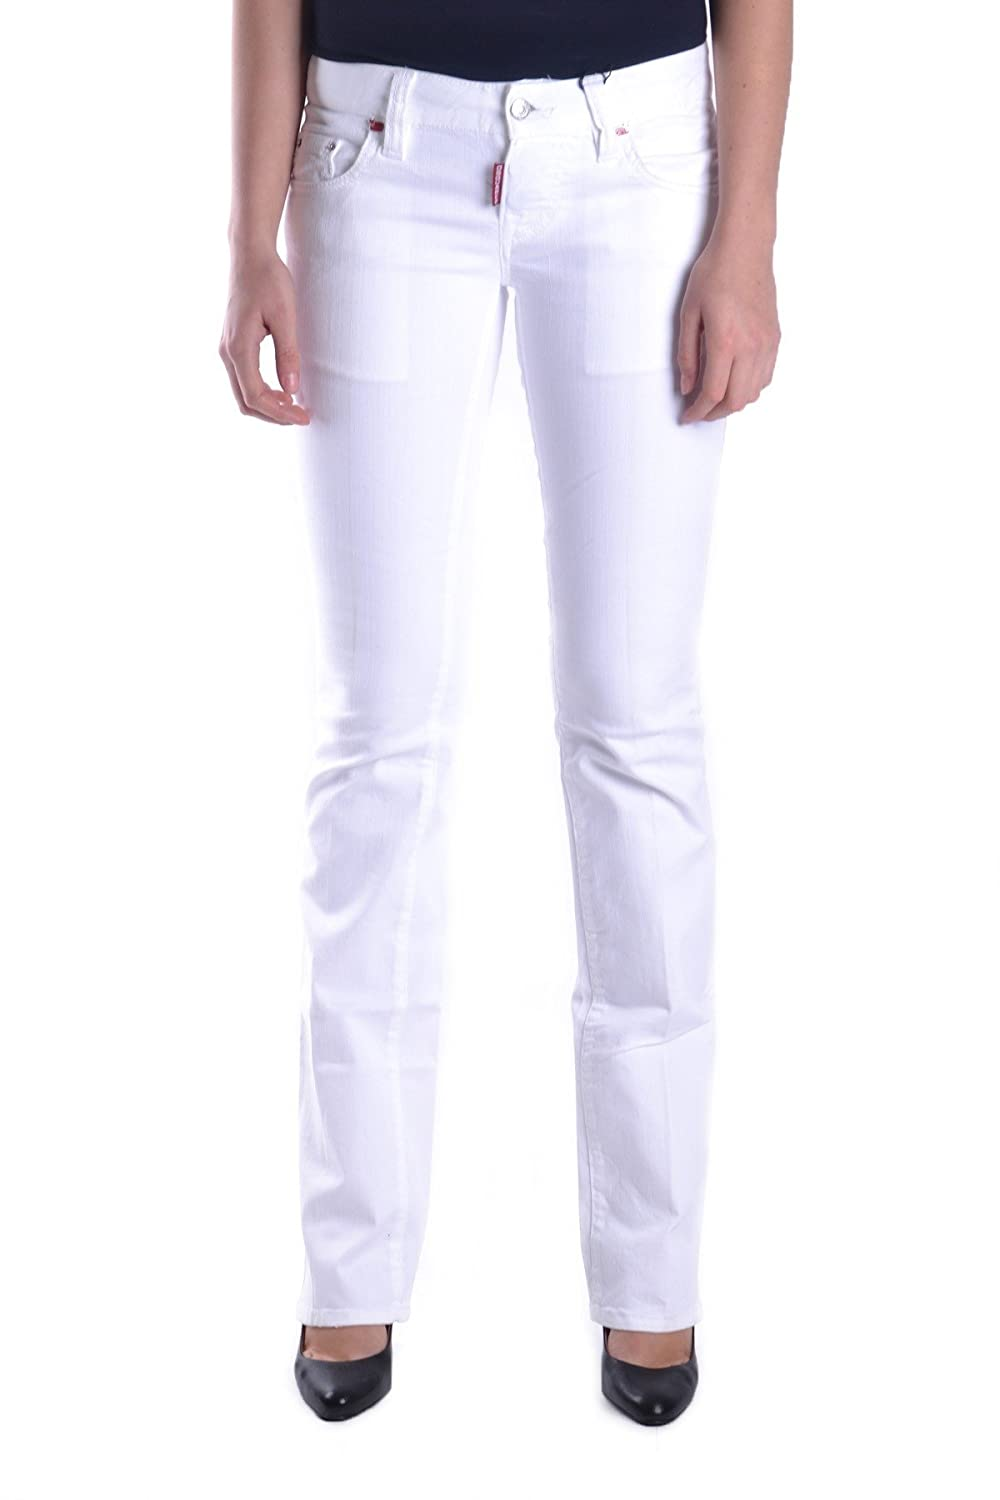 DSQUARED2 WOMEN'S MCBI107158O WHITE COTTON JEANS